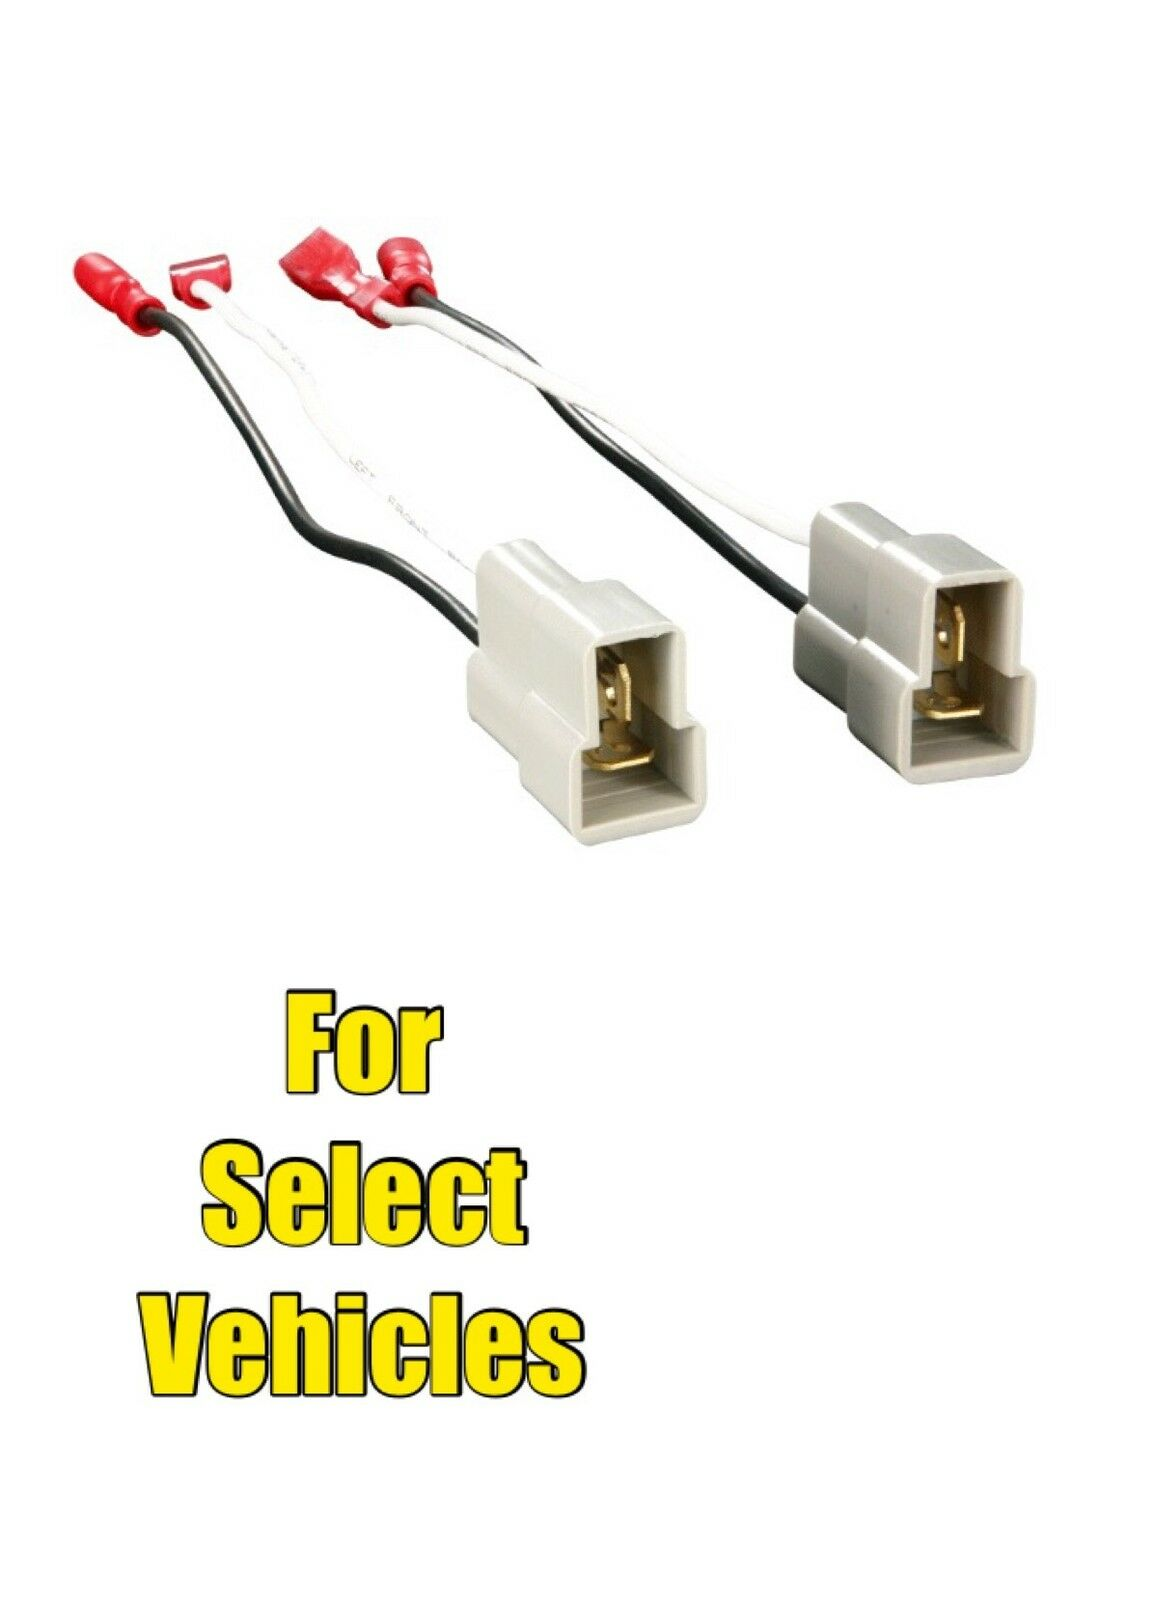 Car Radio Speaker Connection Replacement Wire Harness Adapters select  Vehicles 1 of 1 See More